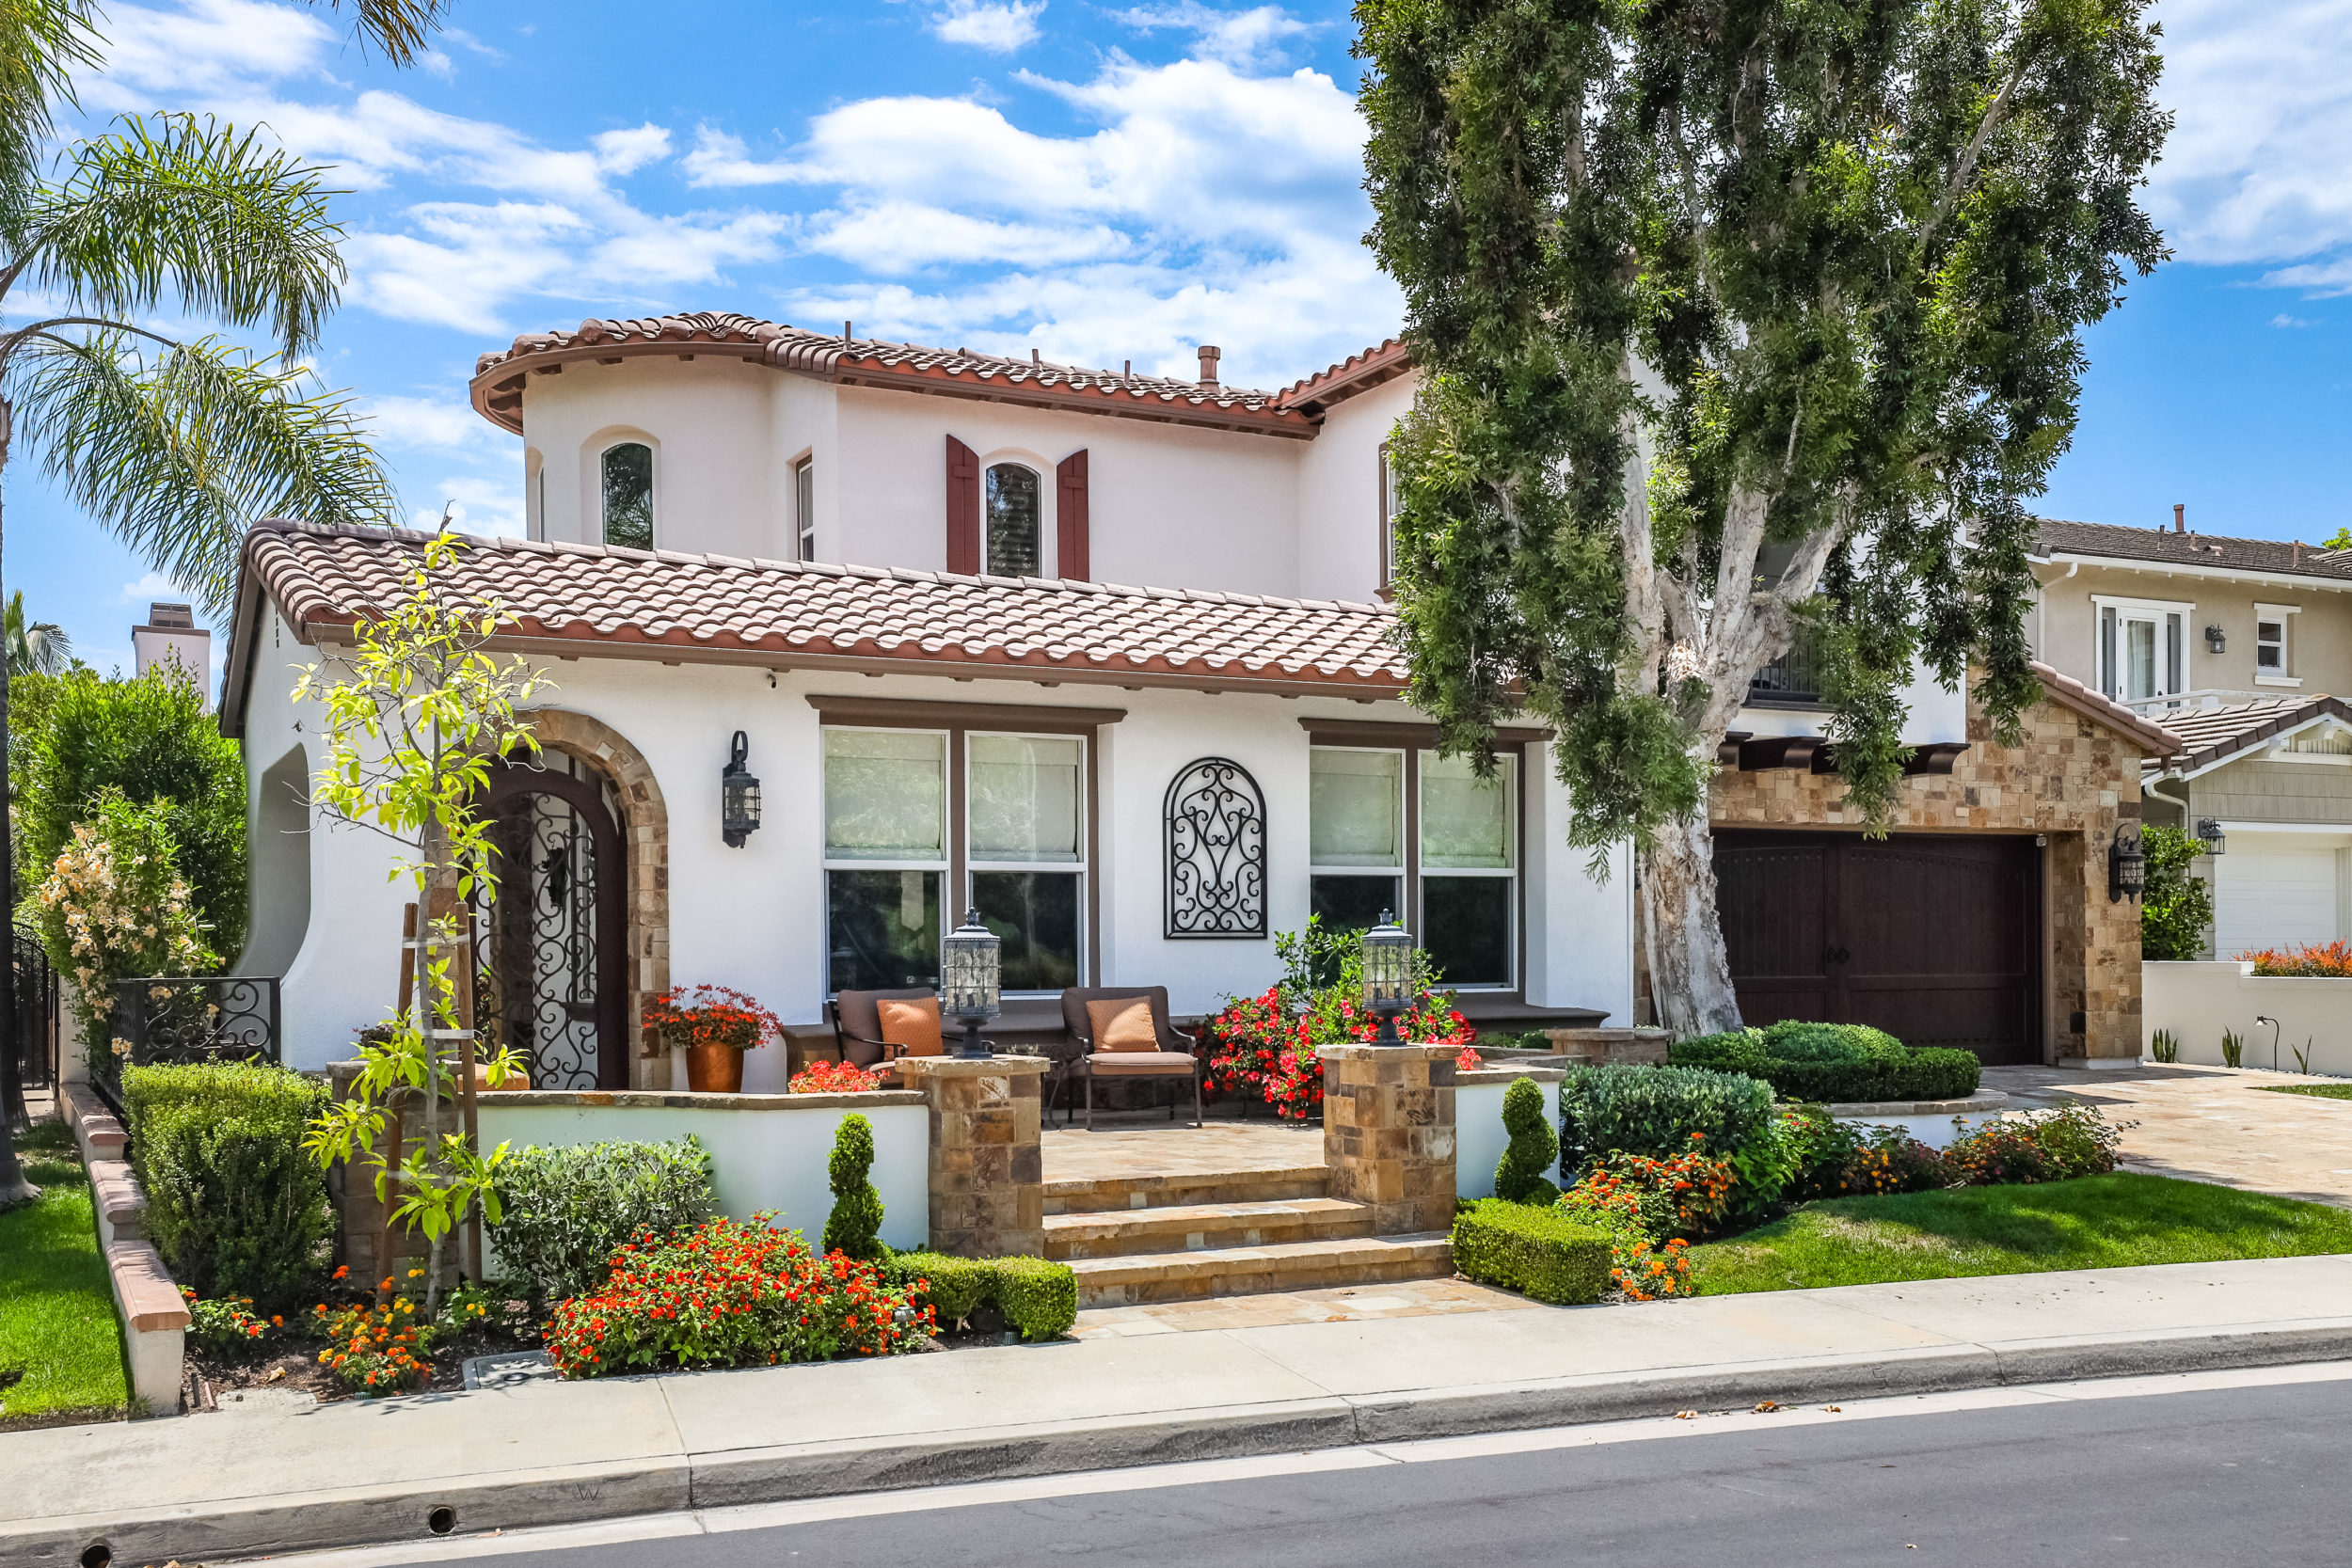 JUST LISTED! 12 Roundtree Court, Aliso Viejo